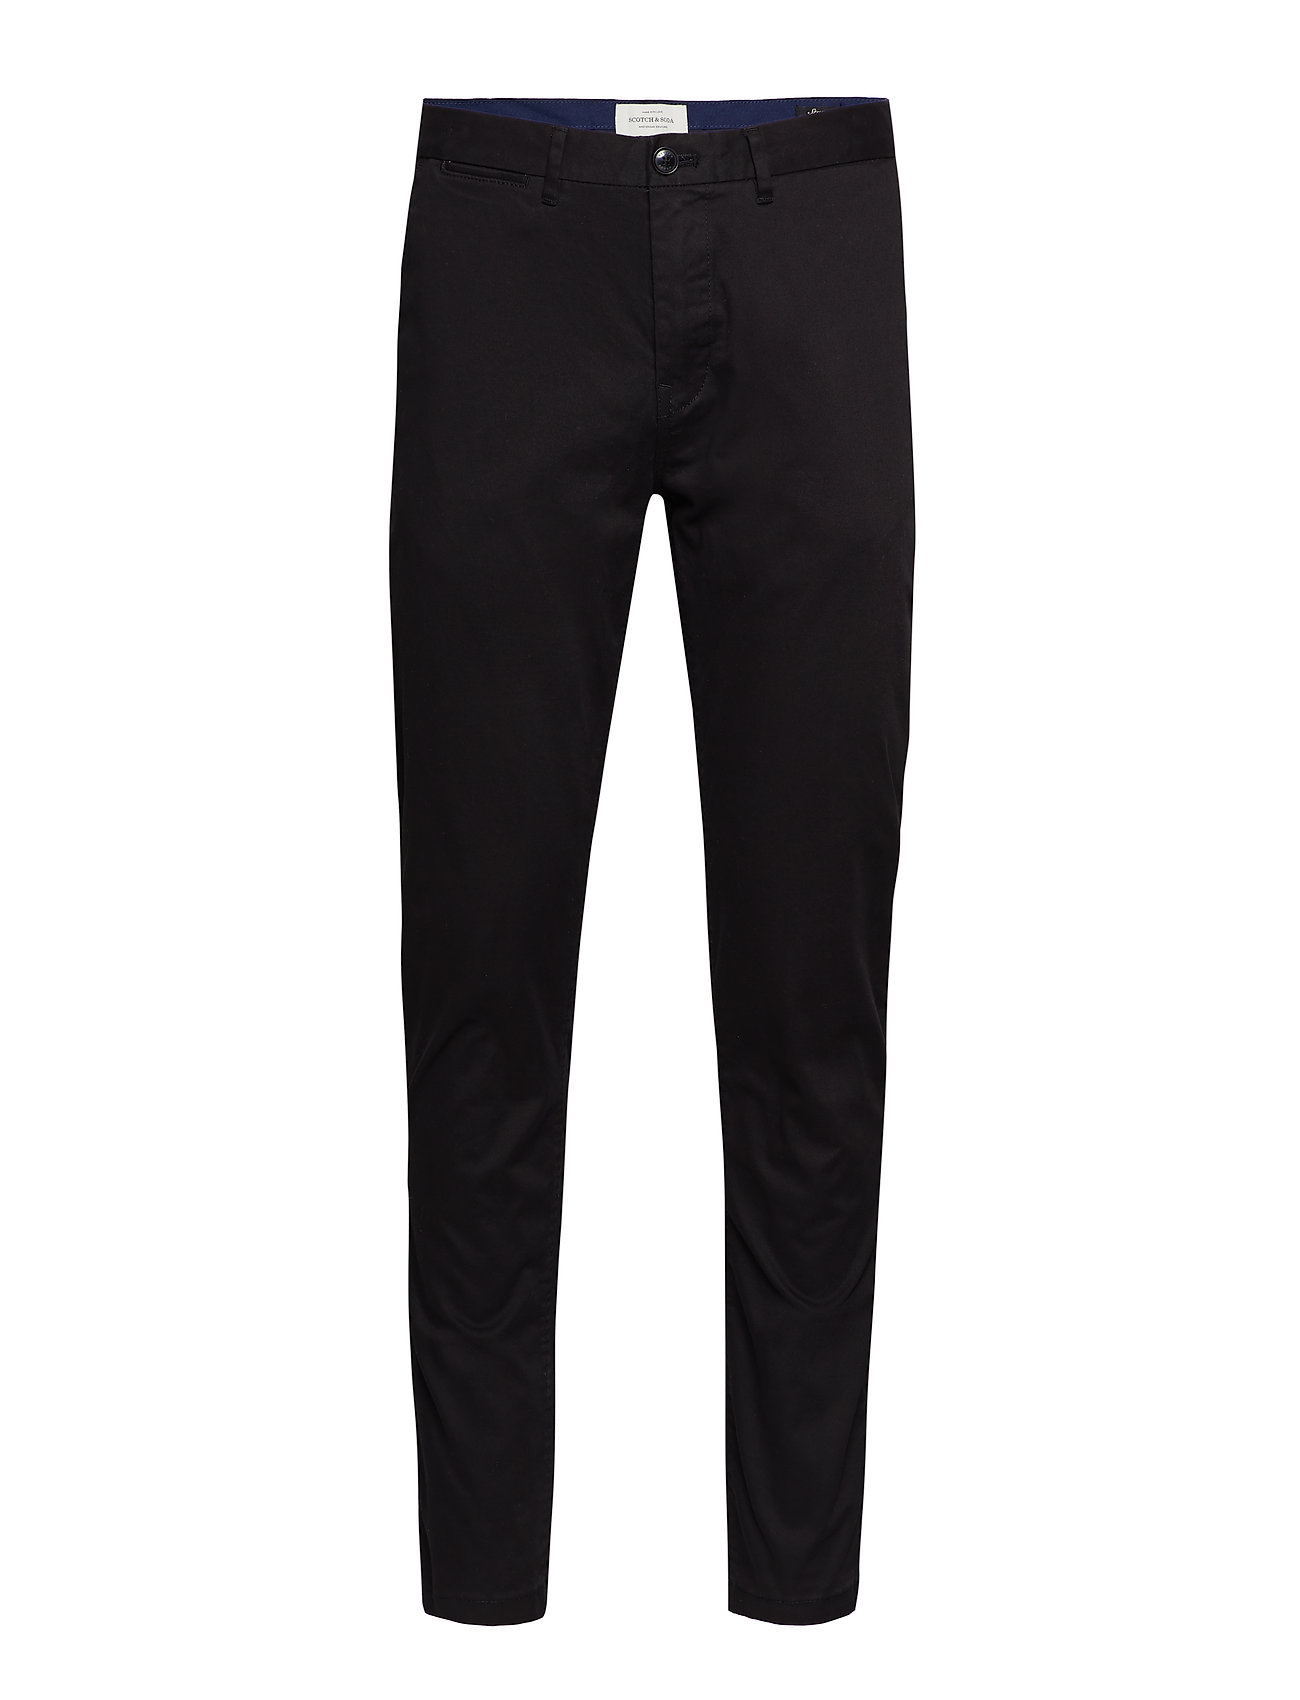 Scotch & Soda Stuart - Classic regular slim fit chino - BLACK